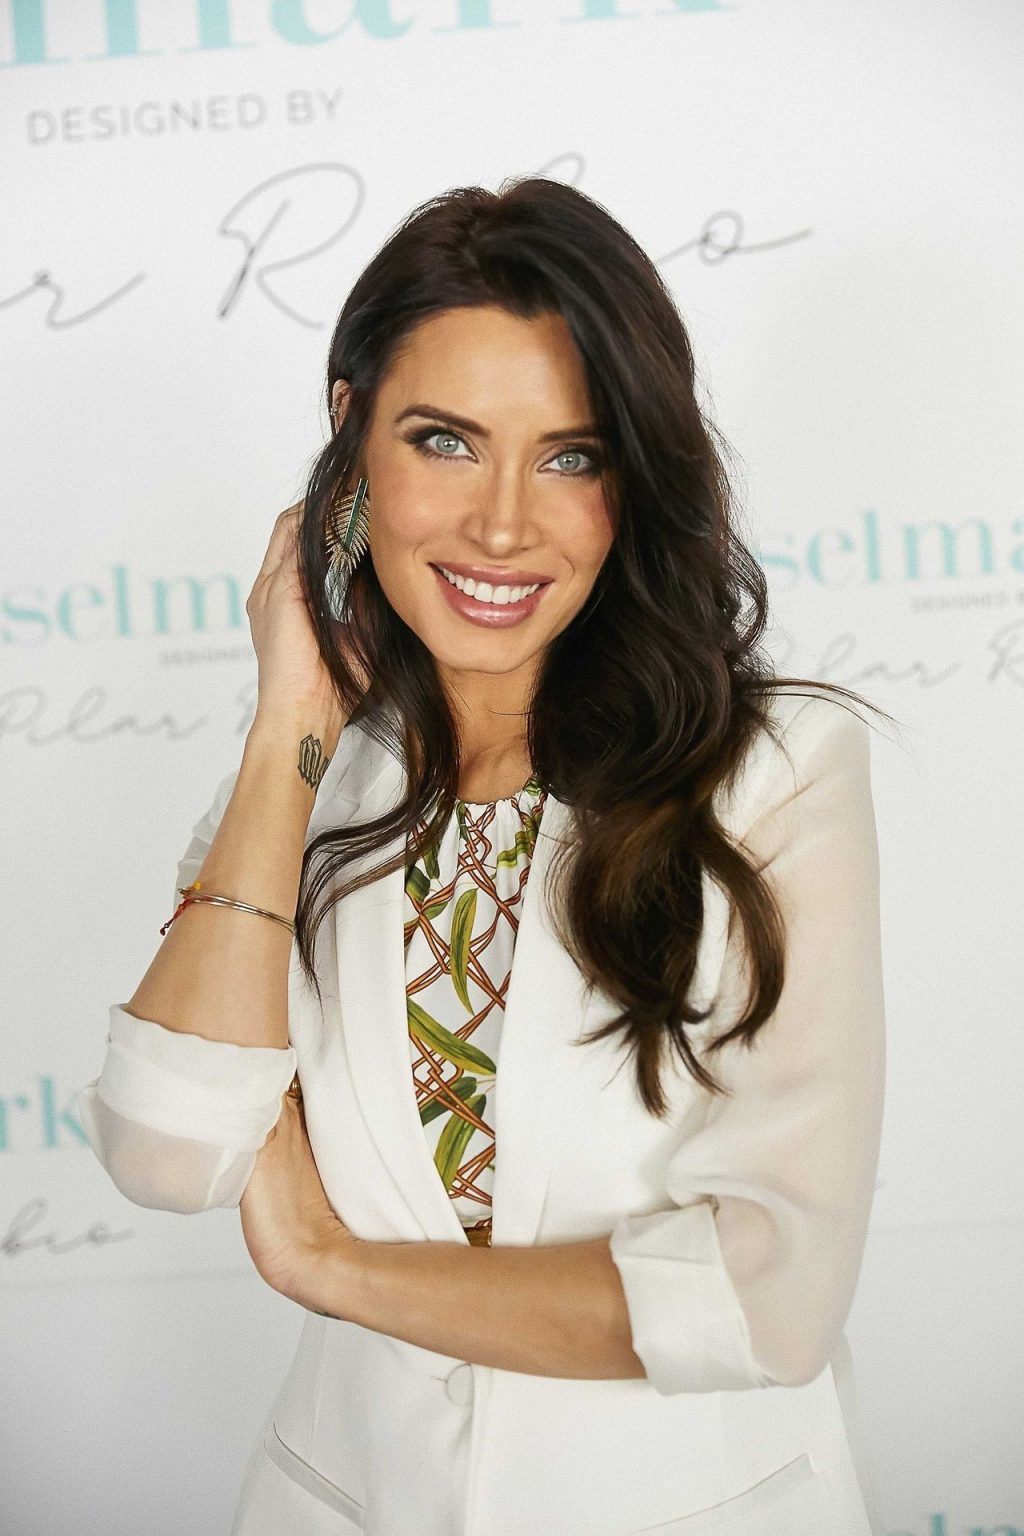 Pilar Rubio Launches Her Swimwear Collection For Summer (18 Photos)